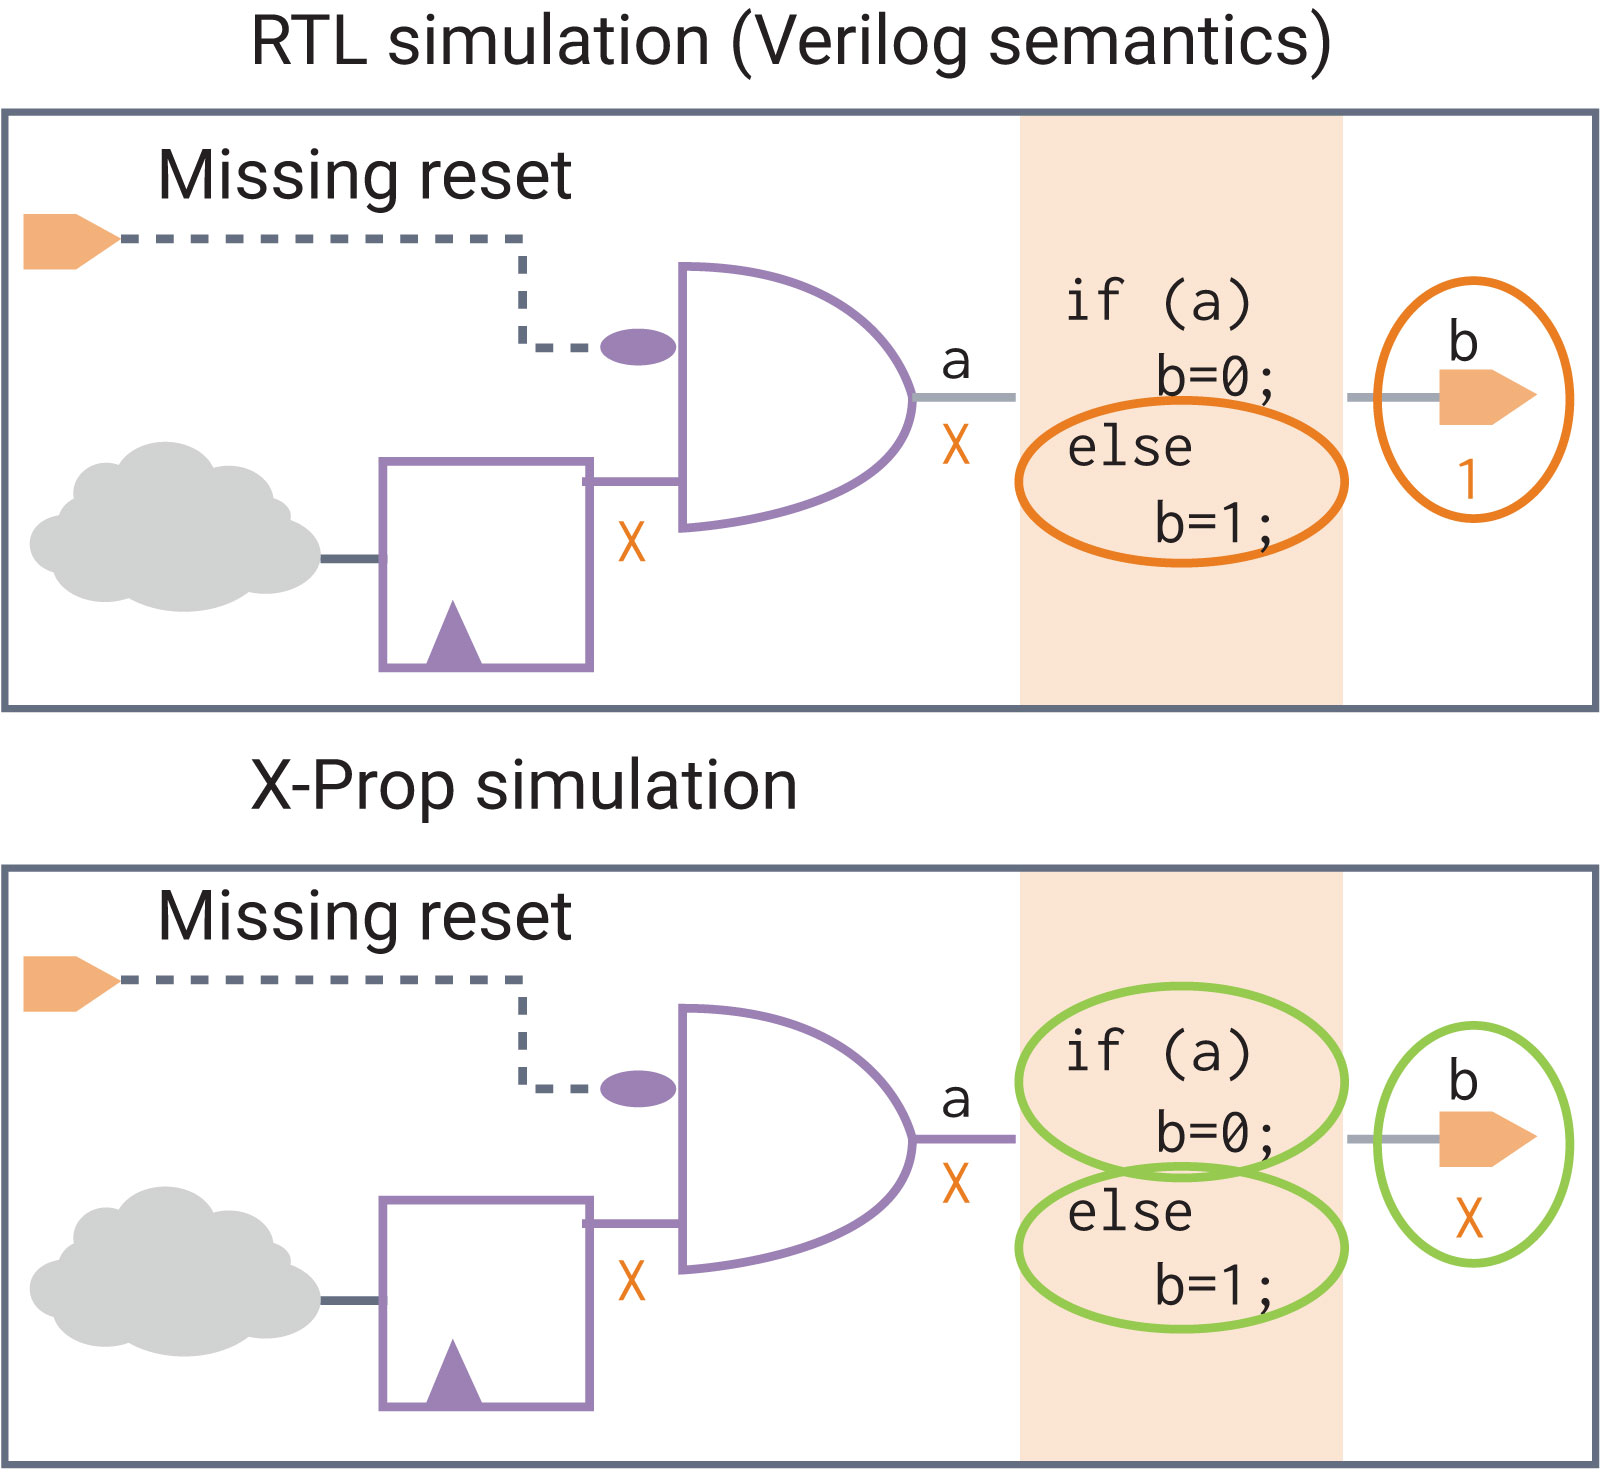 VCS X-prop simulation and RTL simulation (Verilog semantics)